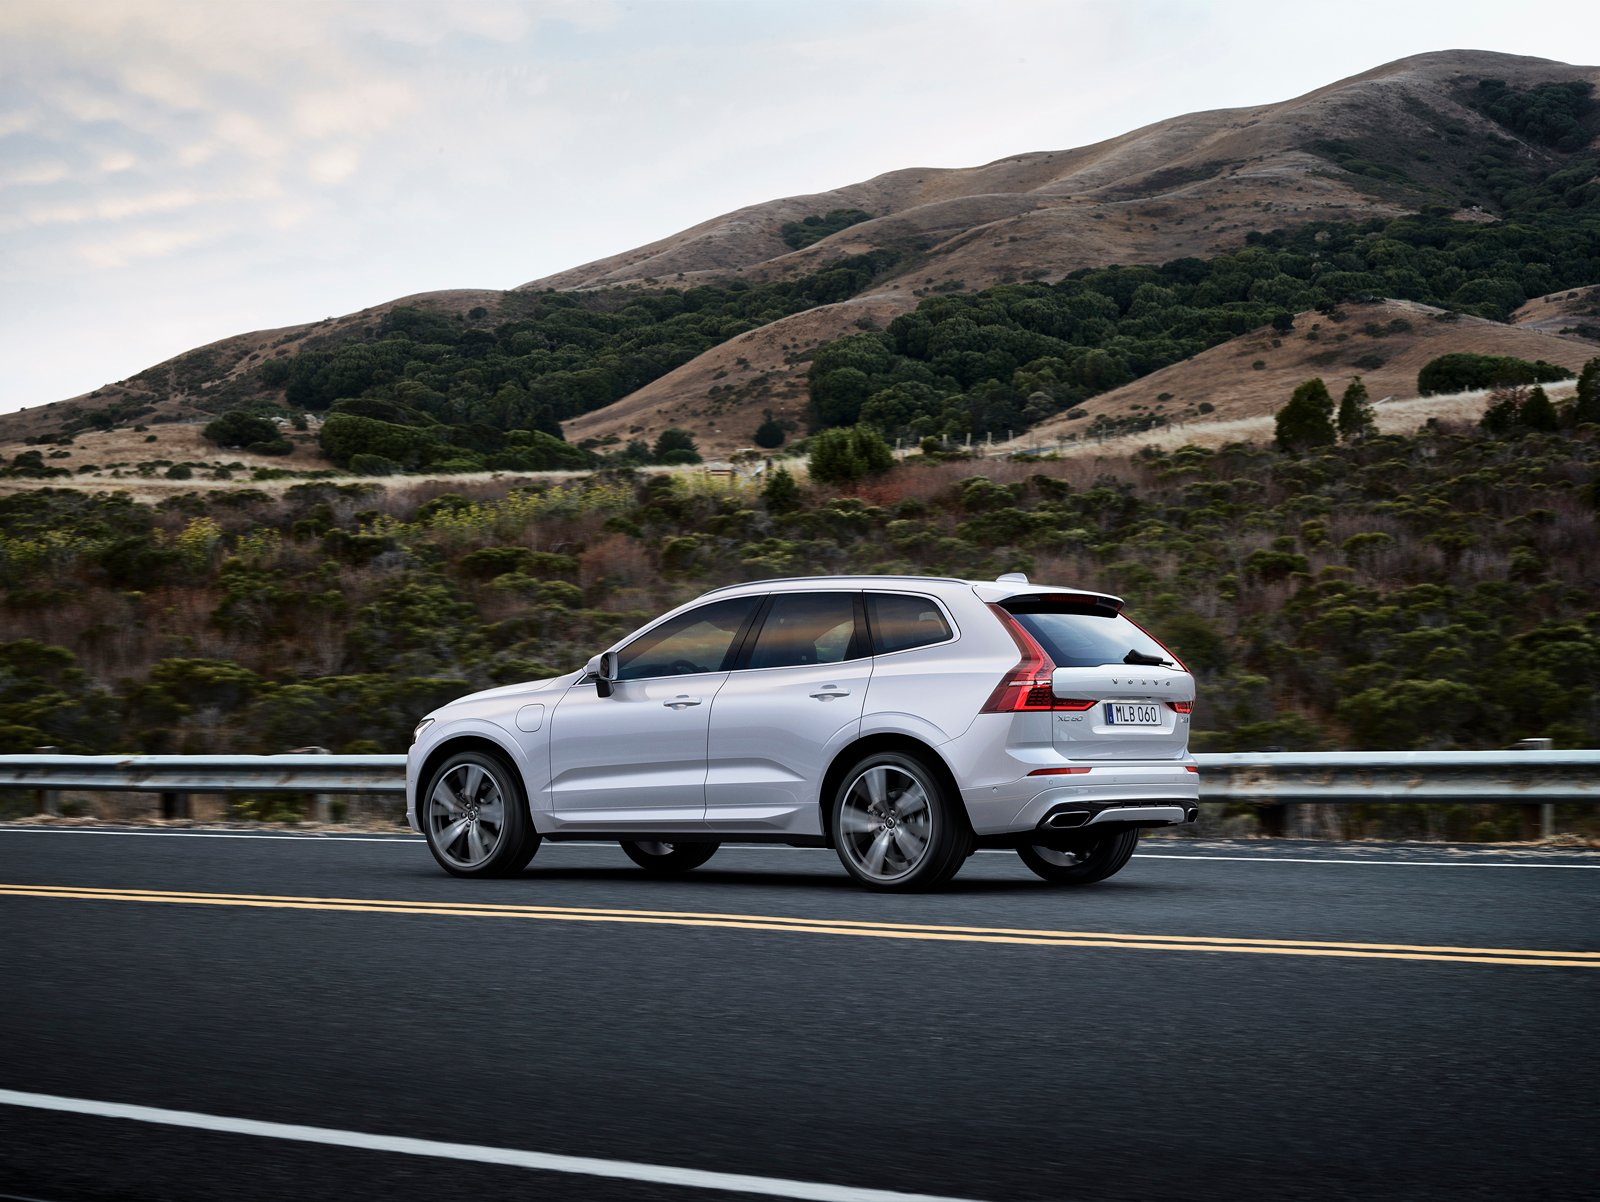 Fancy a 313kW Volvo XC60?